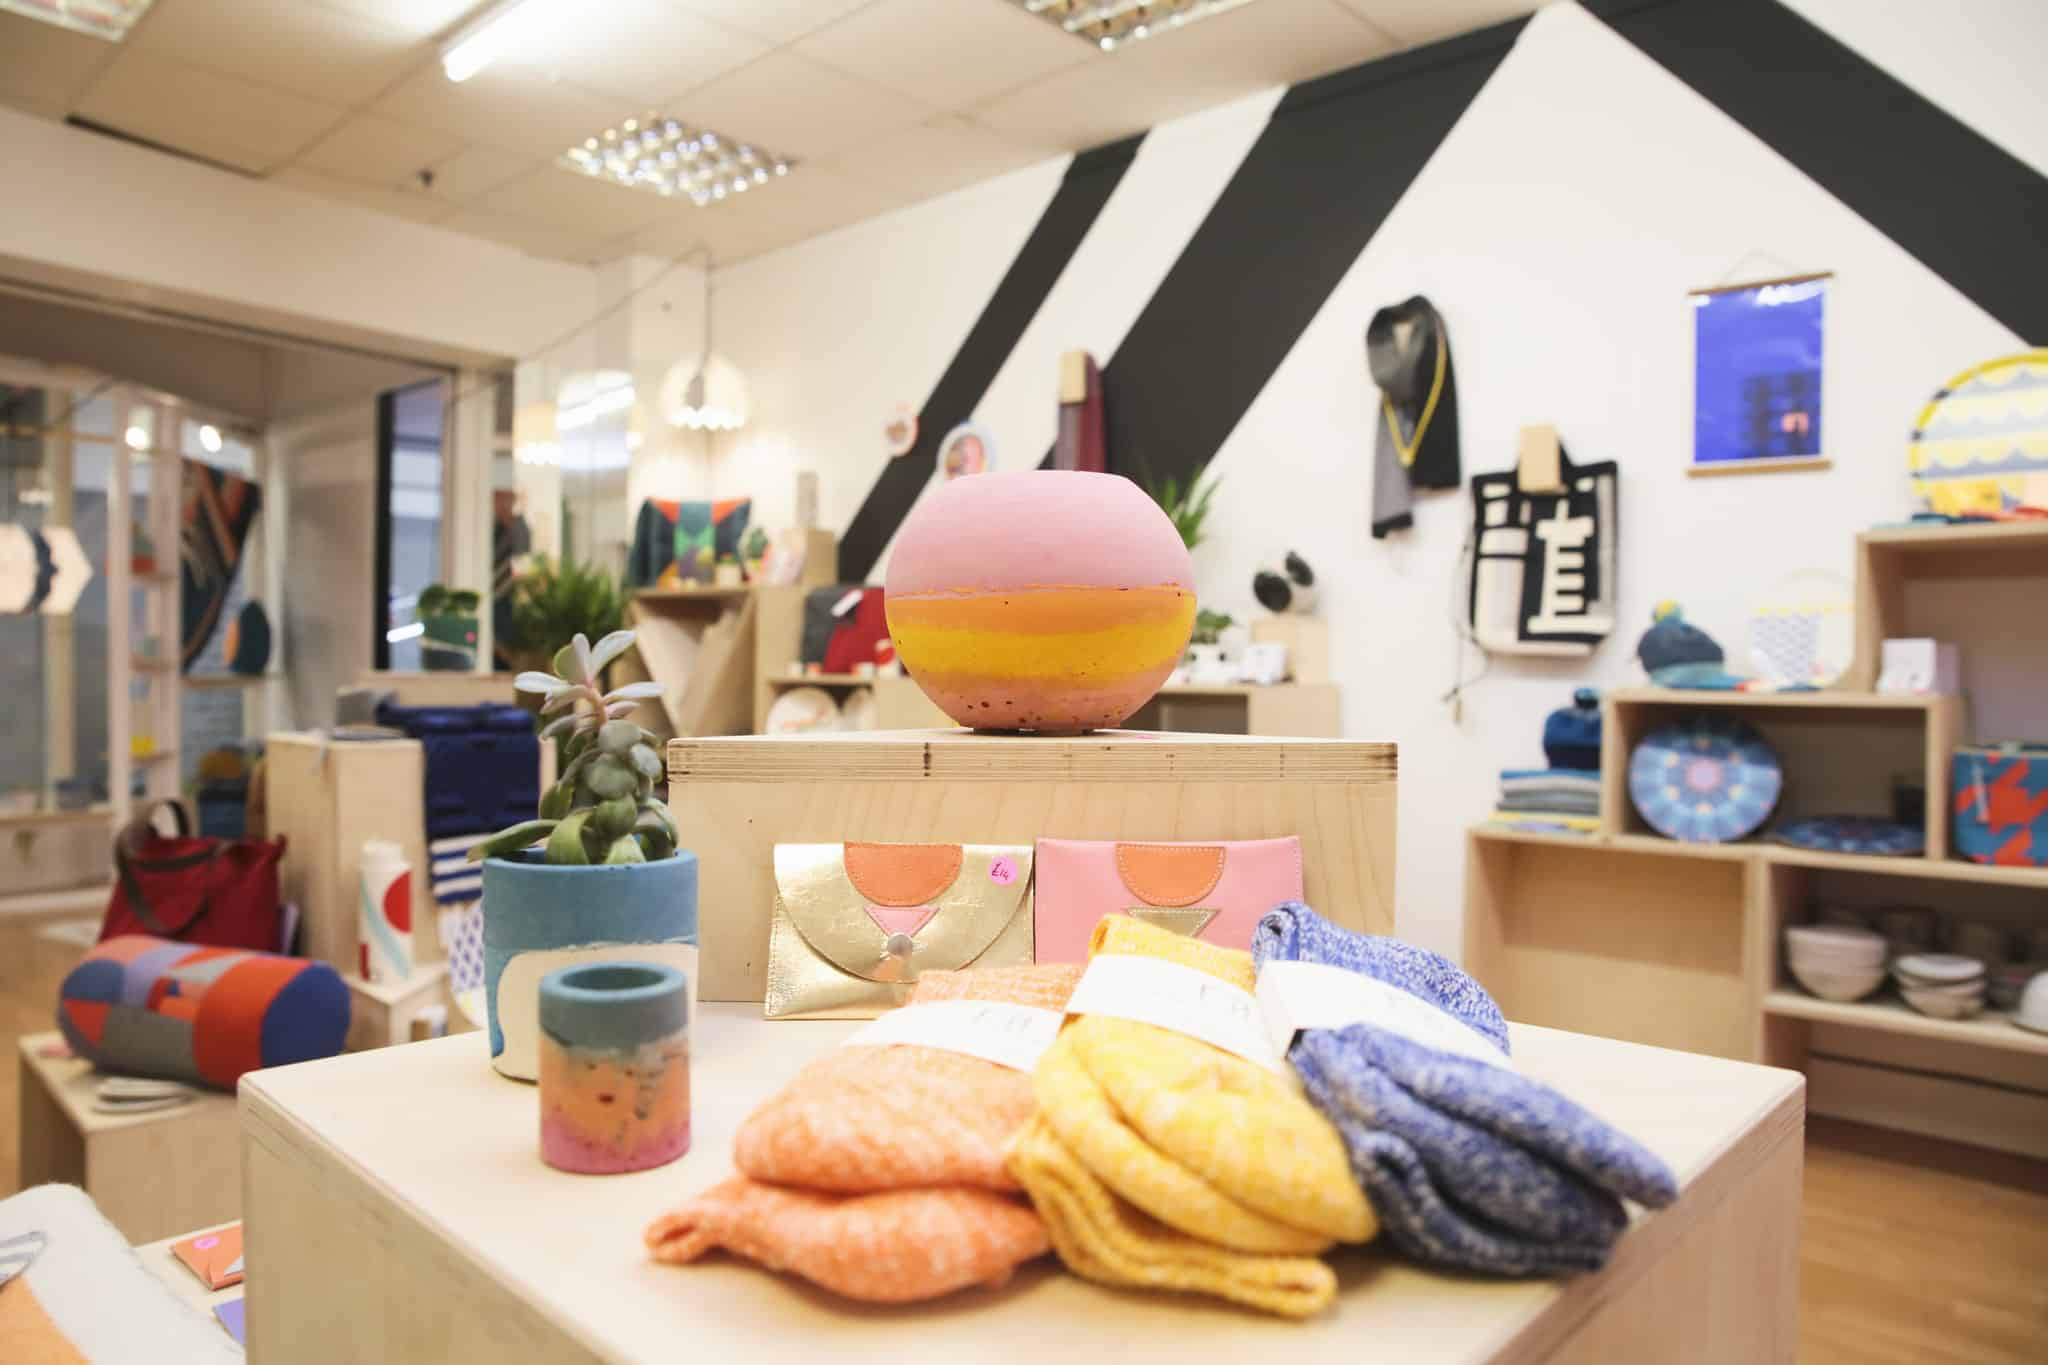 Design Superstore, Dundee Design Festival 2019. Photographed by Kathryn Rattray.